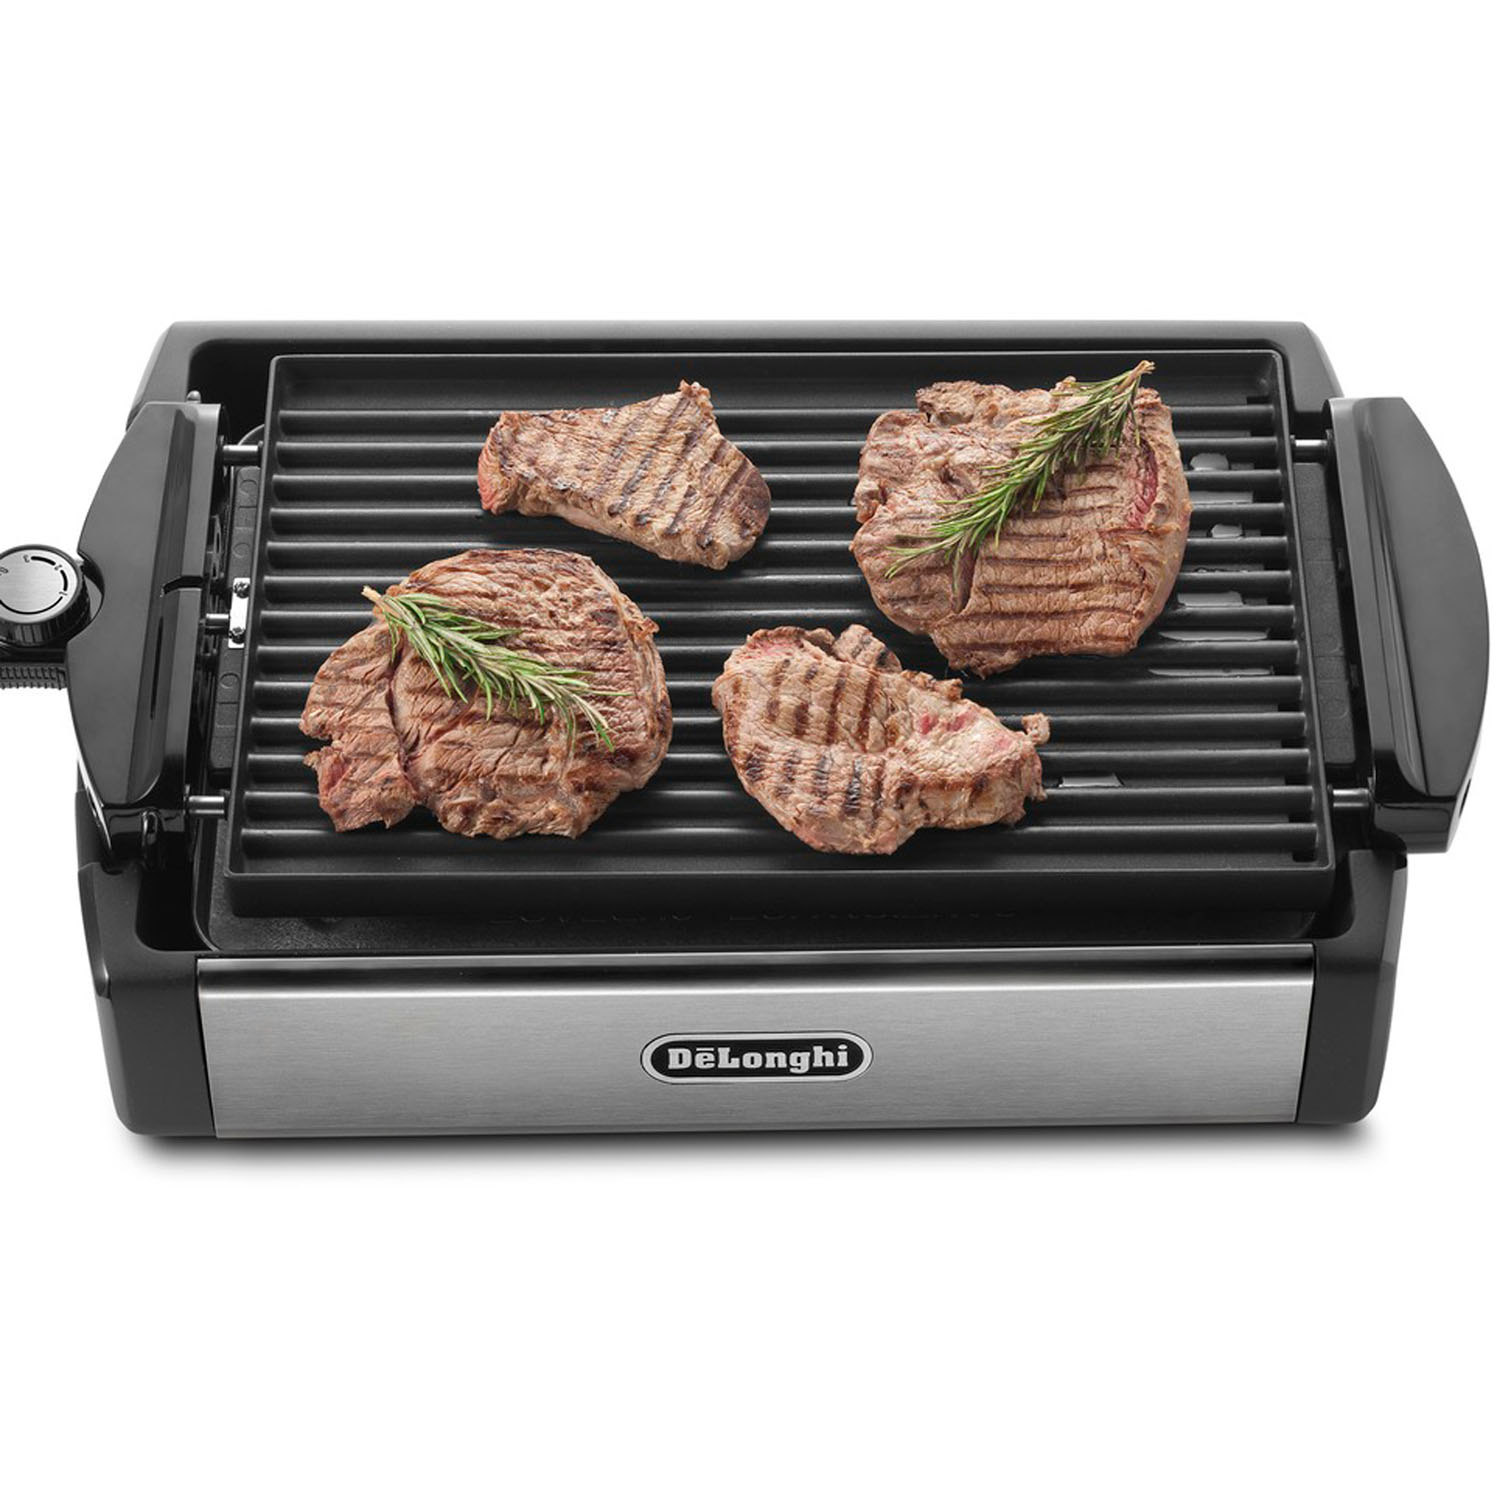 De'Longhi Indoor 2-in-1 Reversible Grill and Griddle by DELONGHI